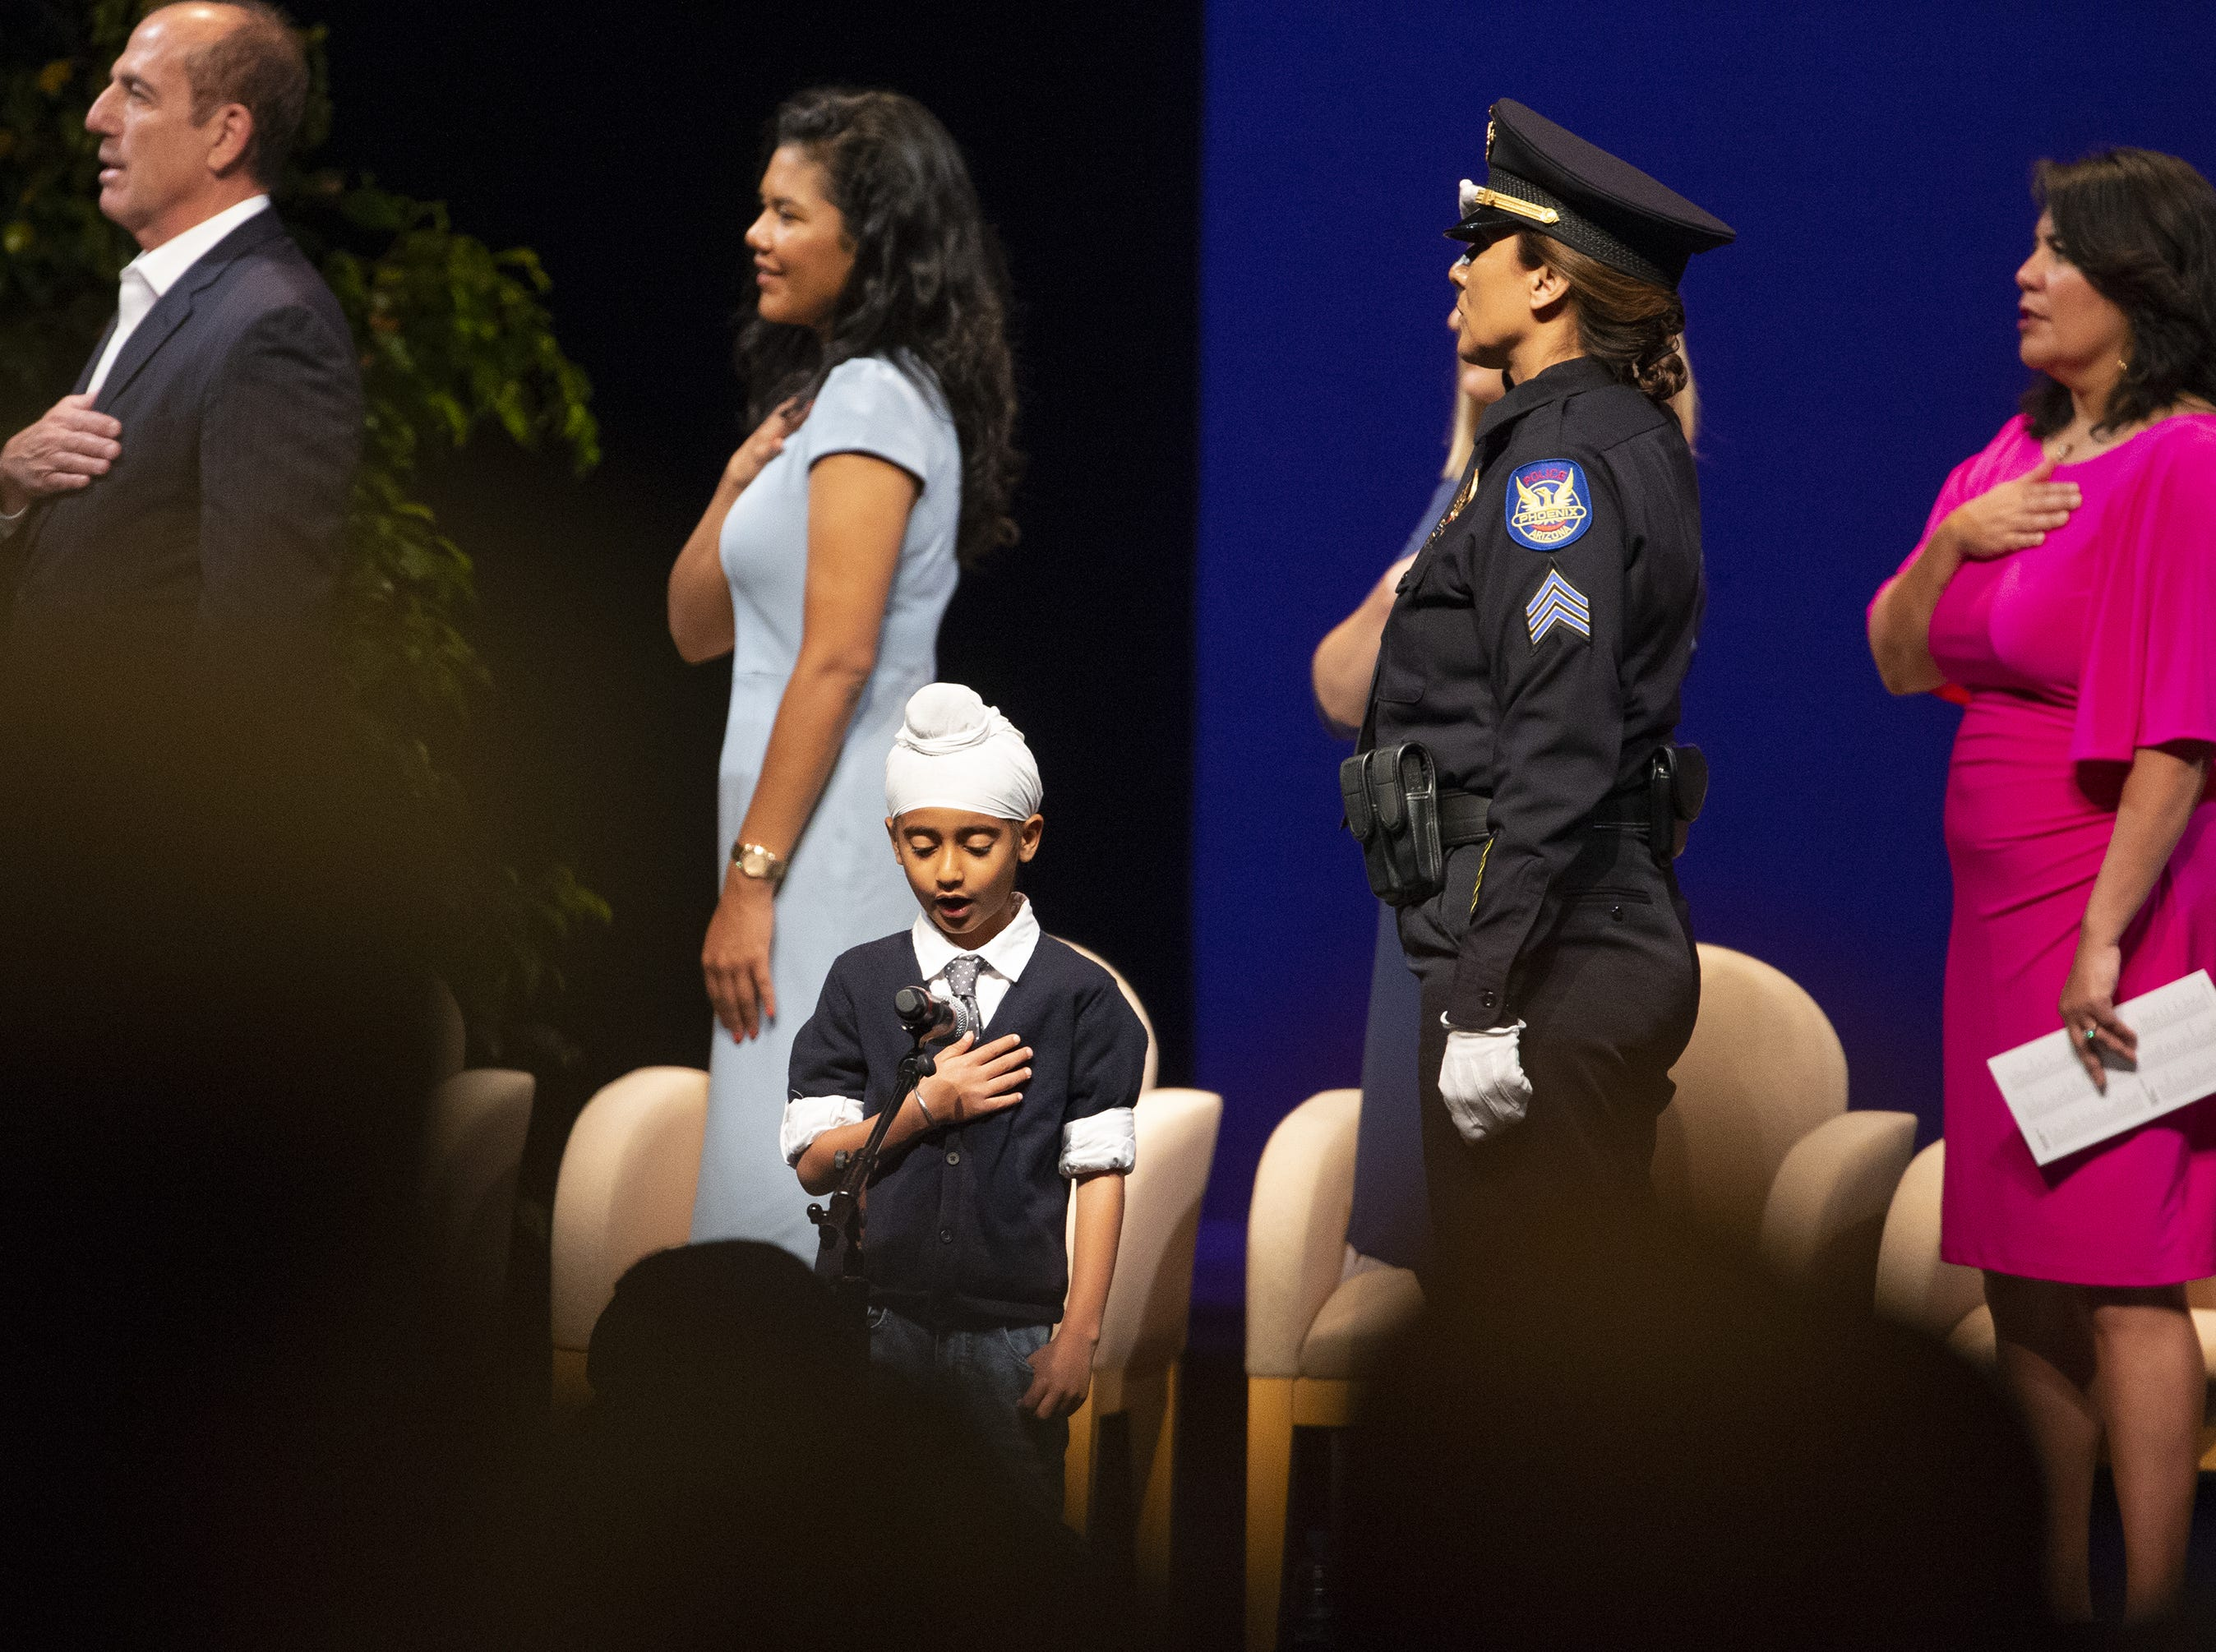 Anaik Singh Sachdev says the Pledge of Allegiance during Kate Gallego's inauguration ceremony as the new mayor of Phoenix on March 21 at the Orpheum Theatre, El niño Anaik Singh Sachdev dirige el juramento durante la ceremonia inaugural de Kate Gallego como nueva alcaldesa de Phoenix, el 21 de marzo de 2019 en el Orpheum Theatre.